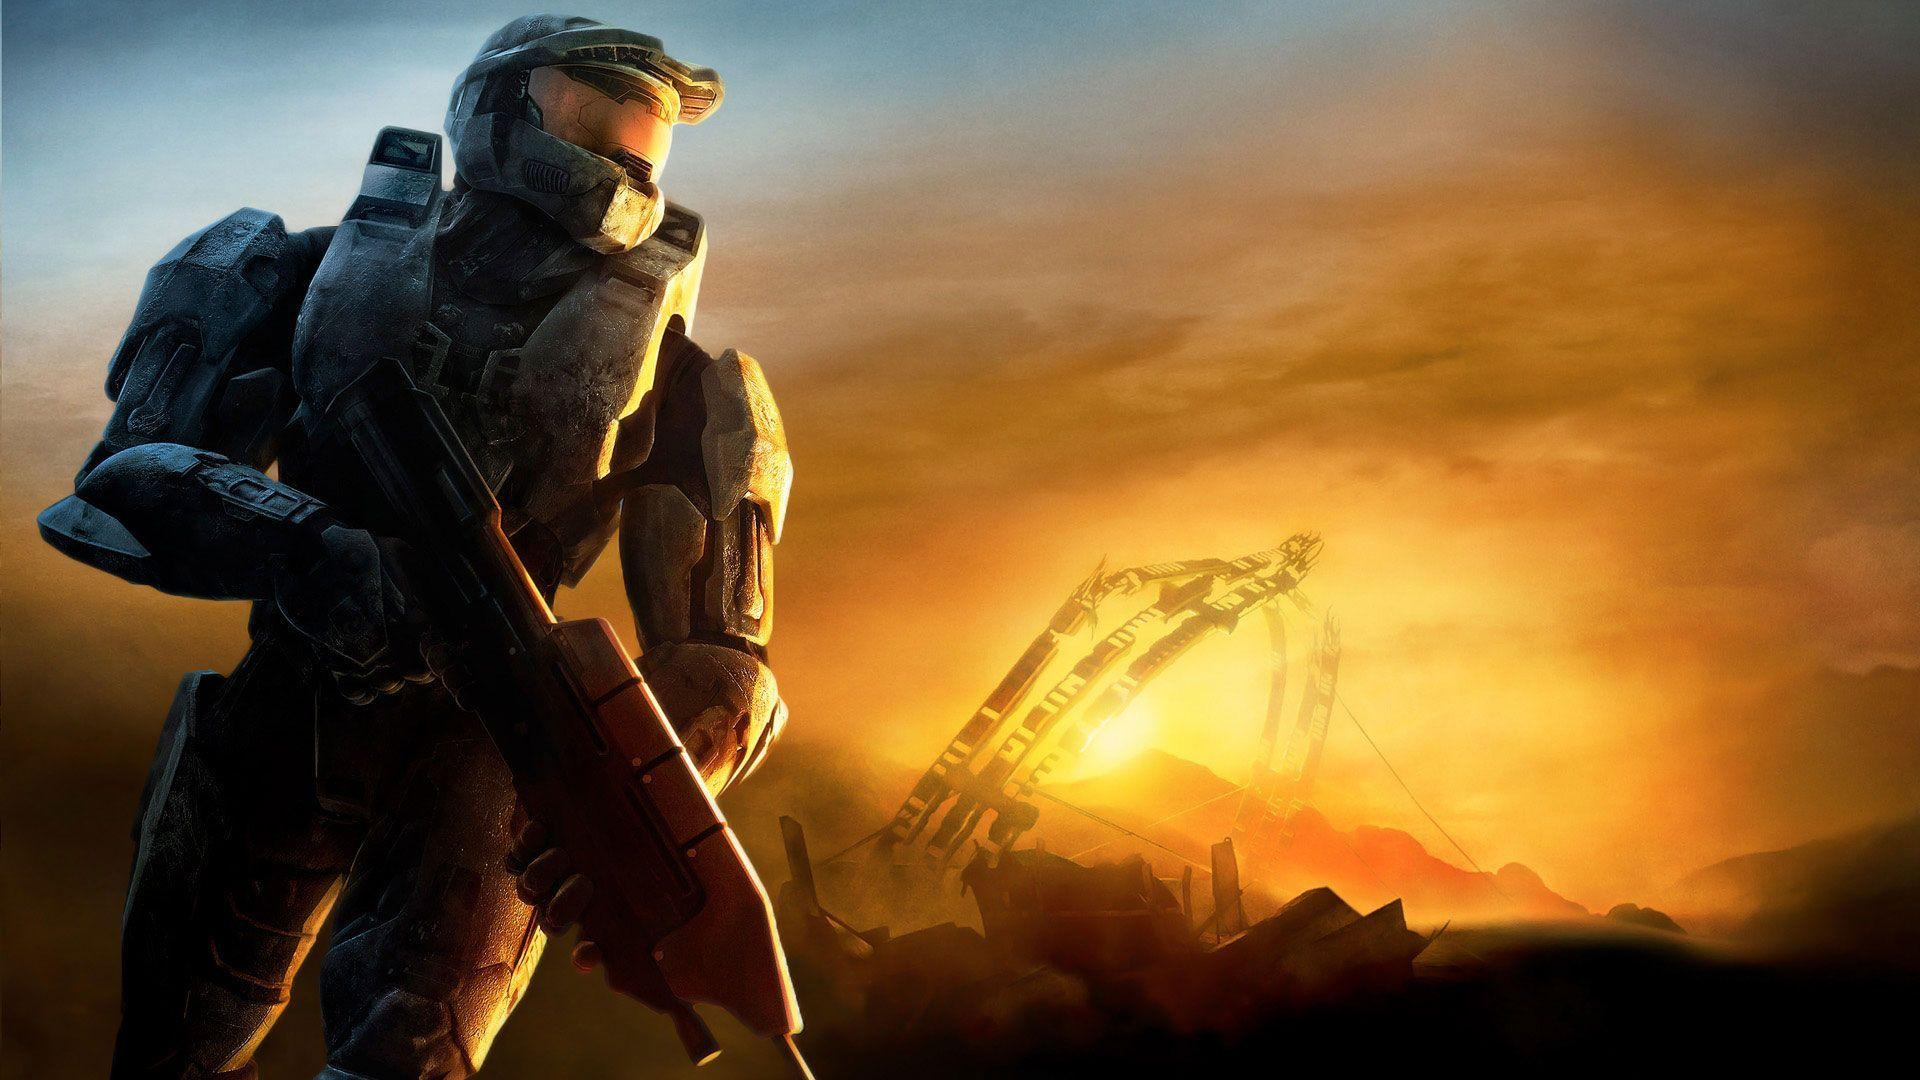 Halo Reach Wallpapers 1080p 1920x1080